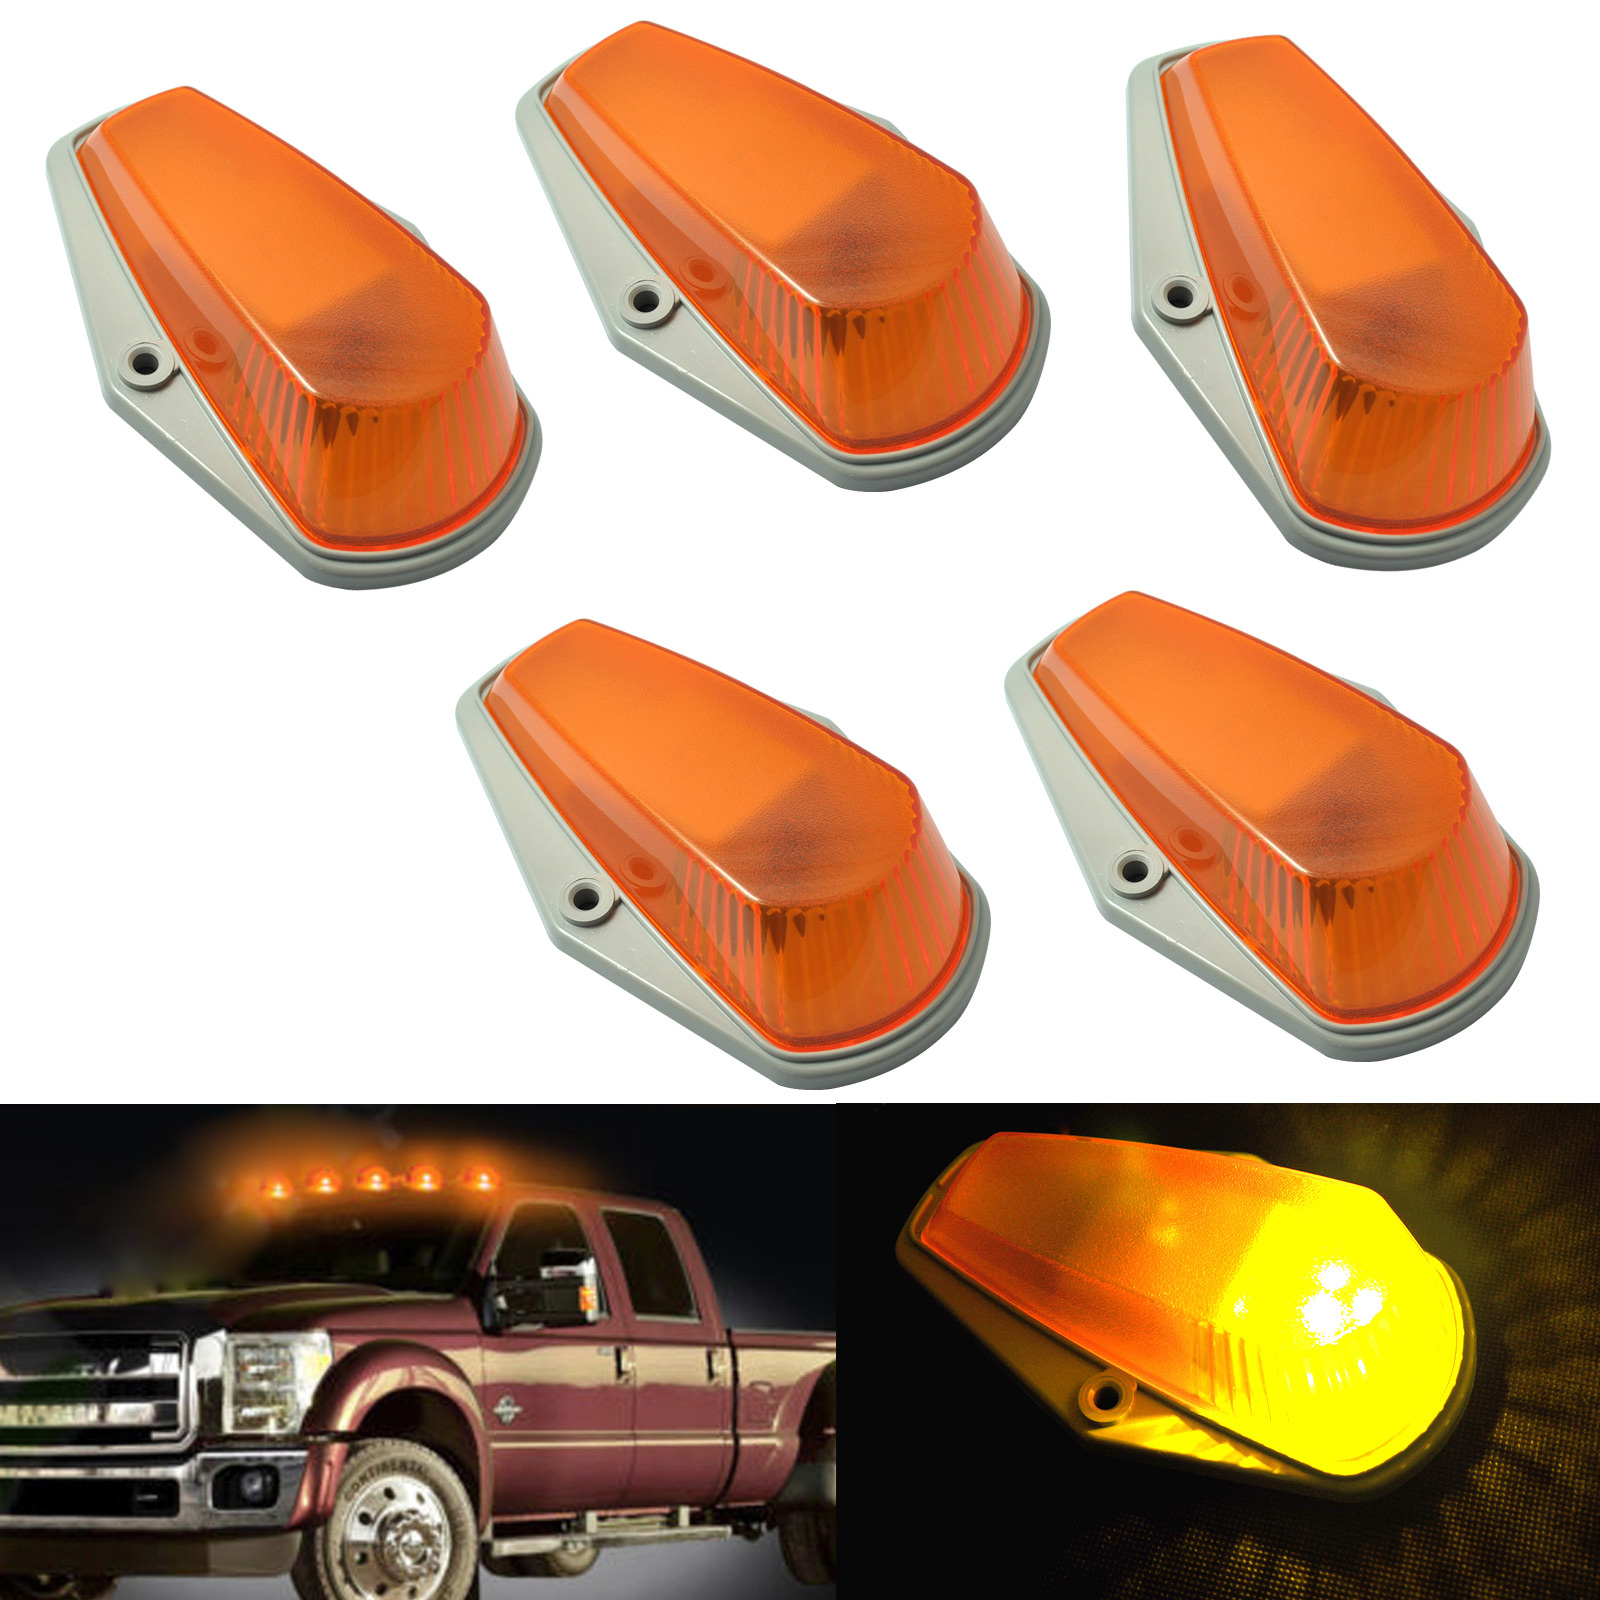 5 pcs Car Cab Roof Light Marker Amber Covers w/ Base Housing For Car 80-97 Ford F Super Duty partol black car roof rack cross bars roof luggage carrier cargo boxes bike rack 45kg 100lbs for honda pilot 2013 2014 2015